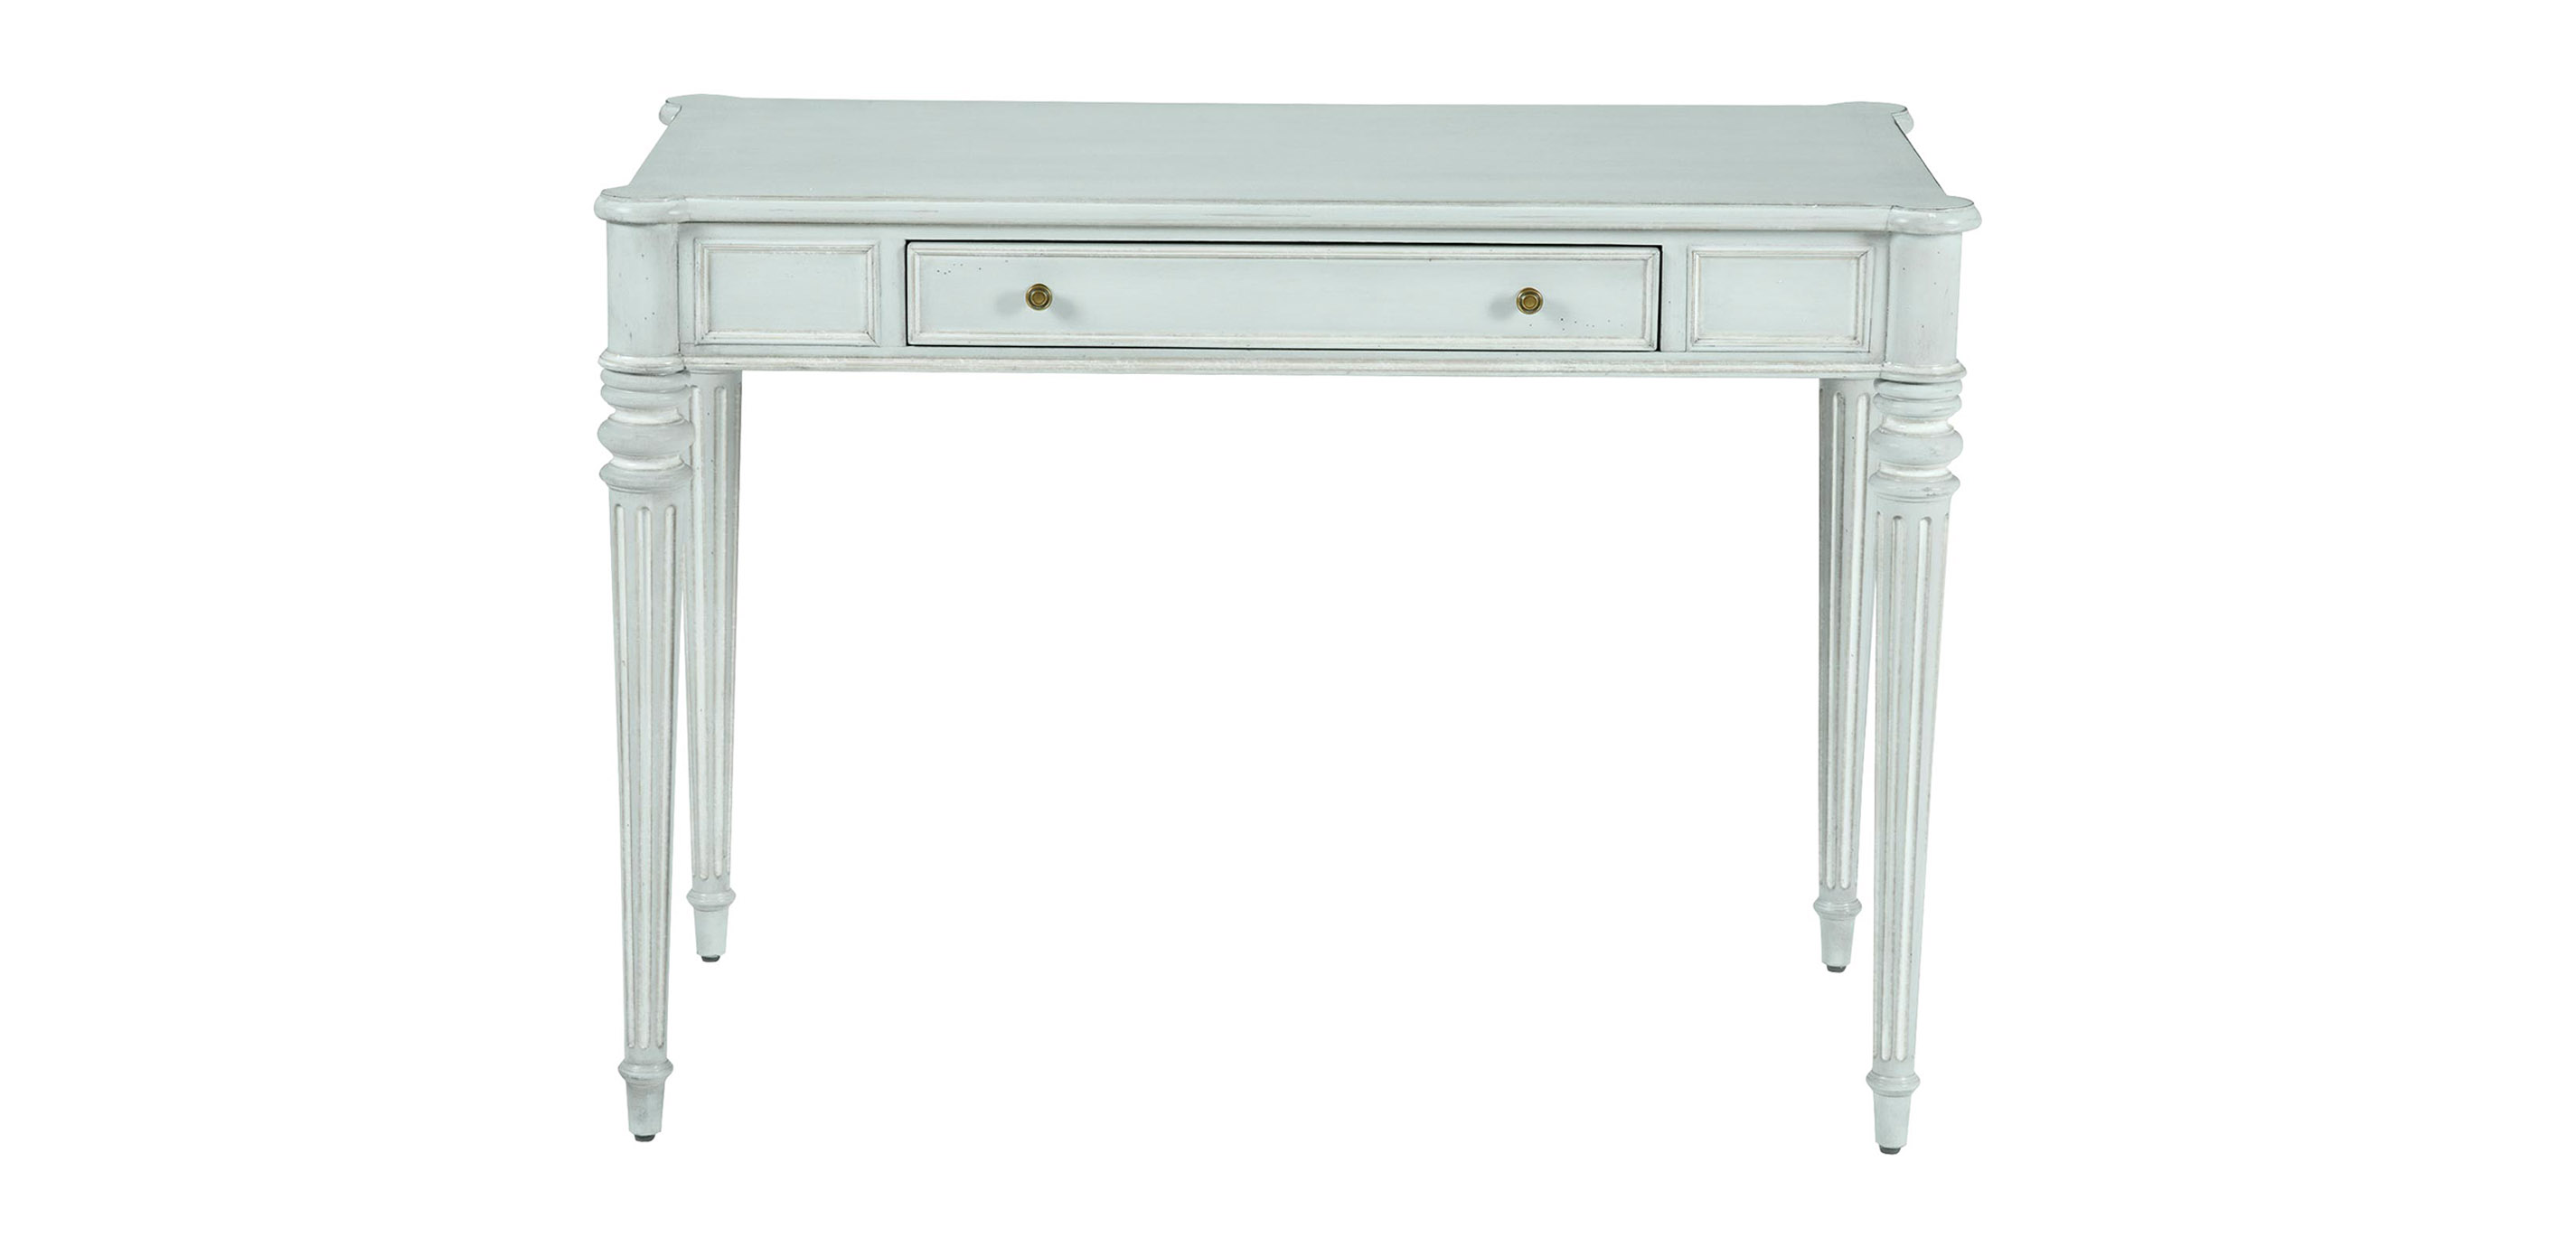 gypsy shop magpiegypsy from magpie navy blue by class makeover desk